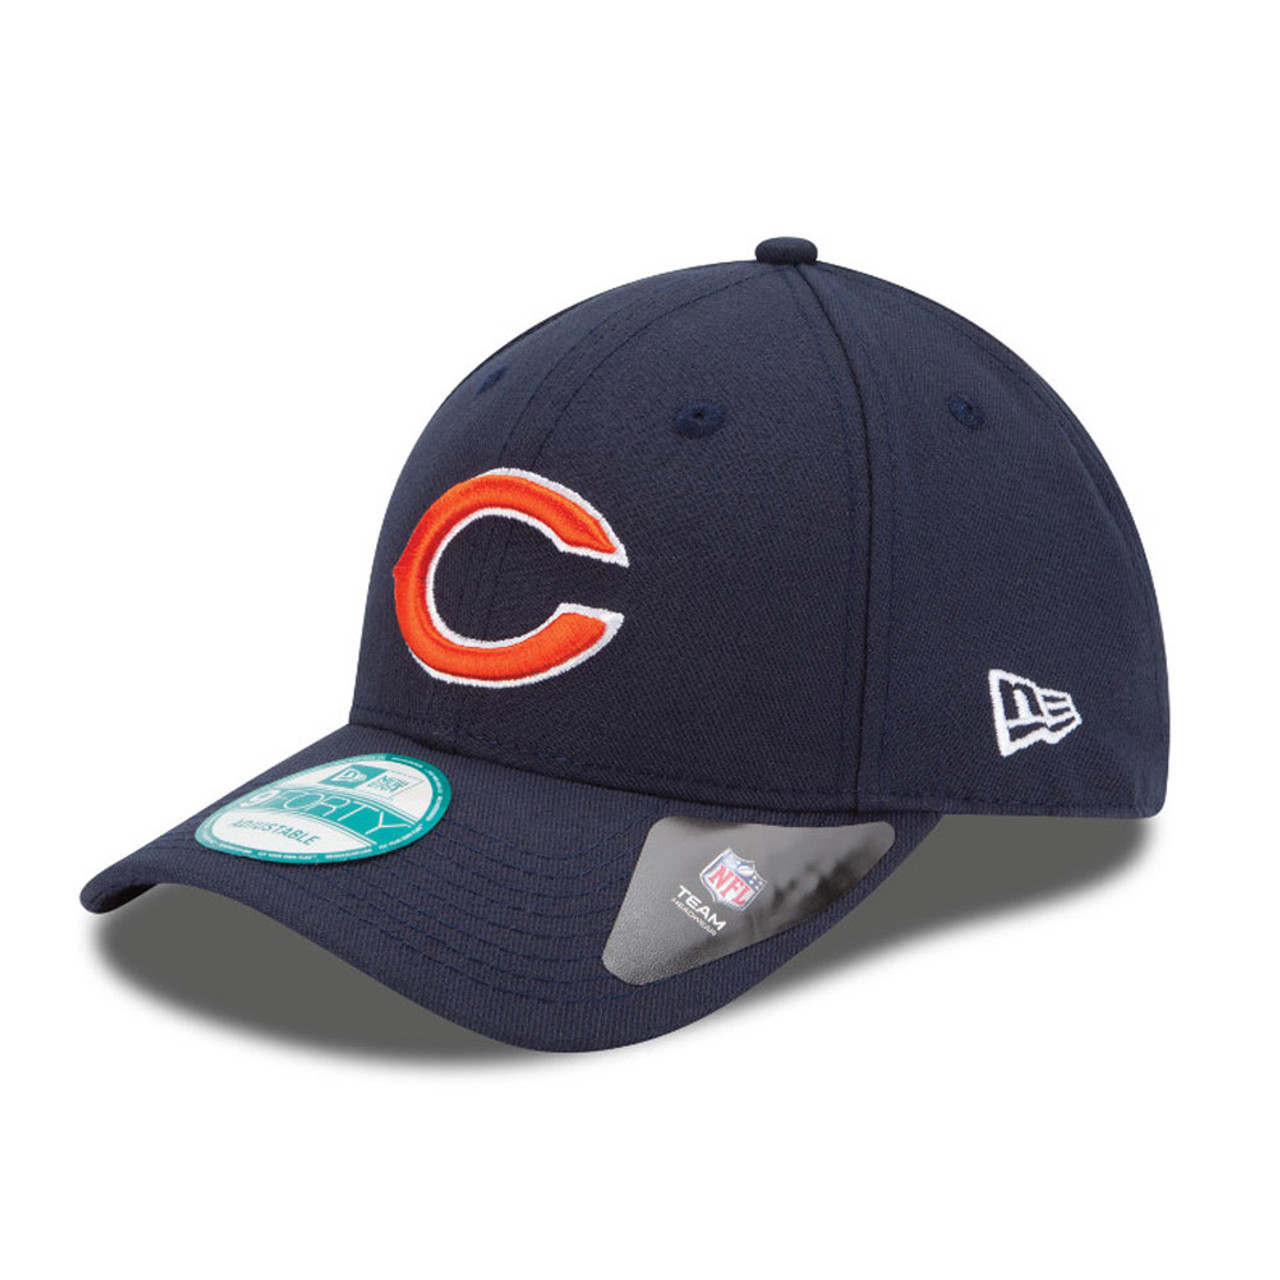 8b5a06acb3d NEW ERA chicago bears 9forty adjustable american football league cap